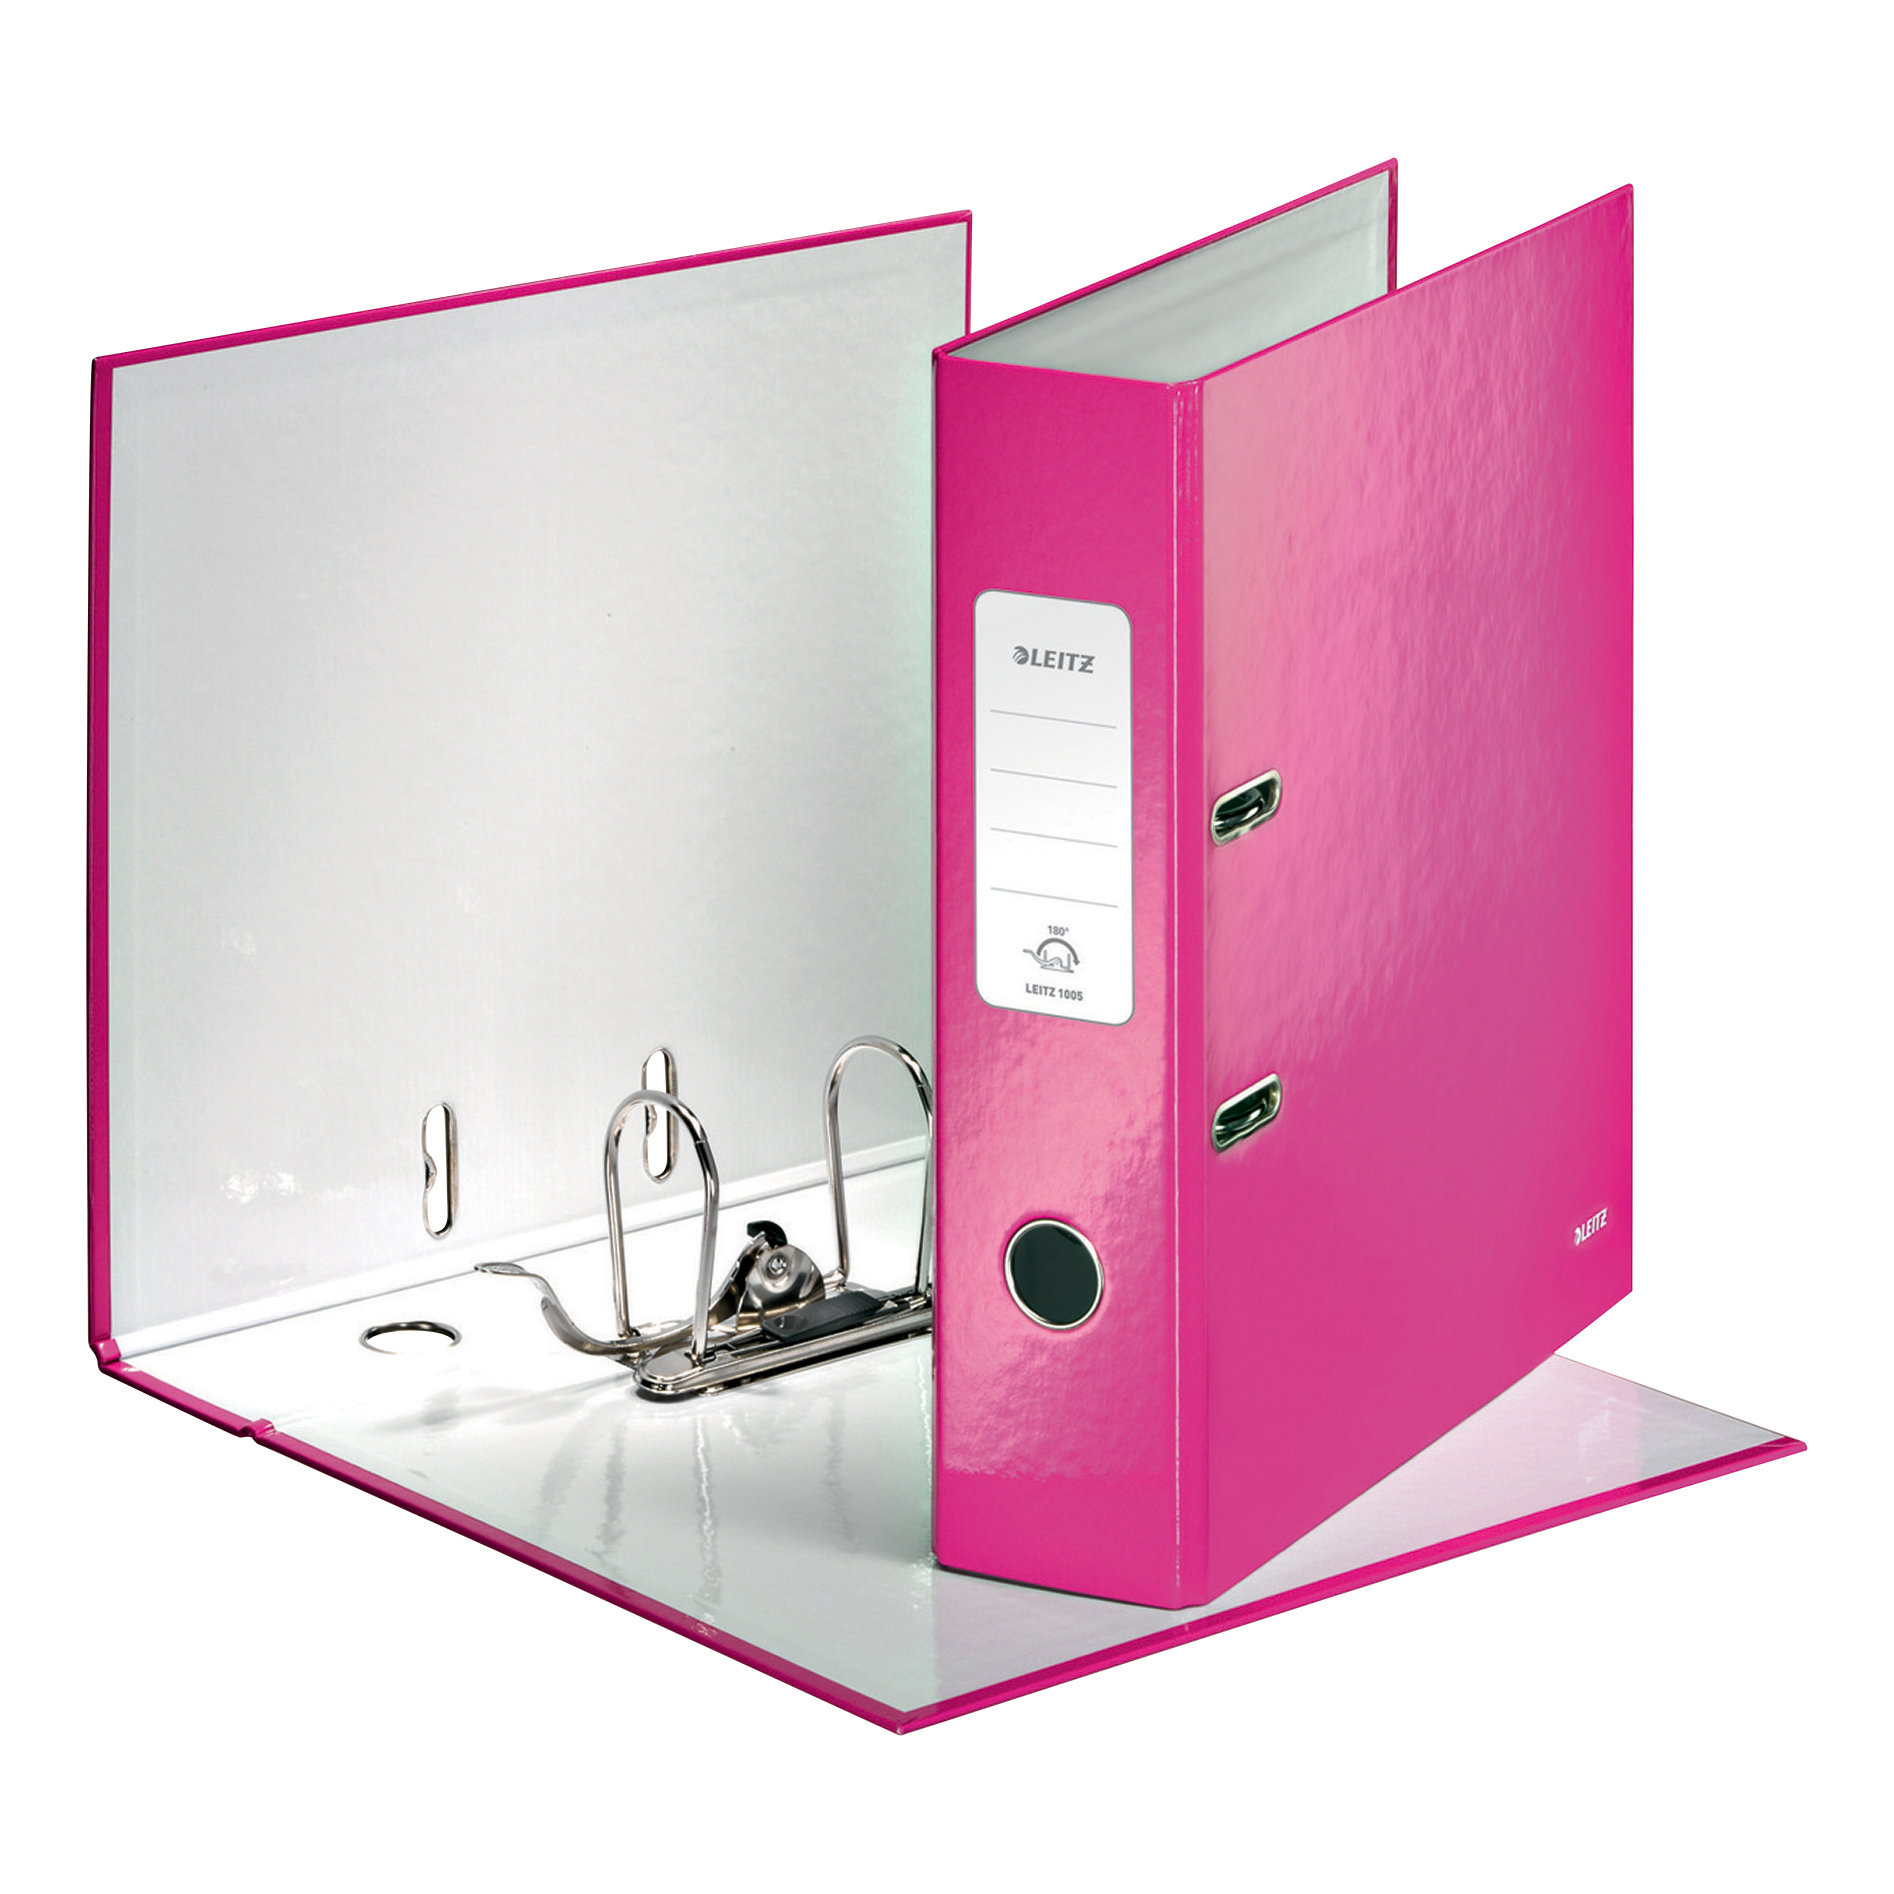 Leitz WOW Lever Arch File 80mm Spine for 600 Sheets A4 Pink Ref 10050023 Pack 10